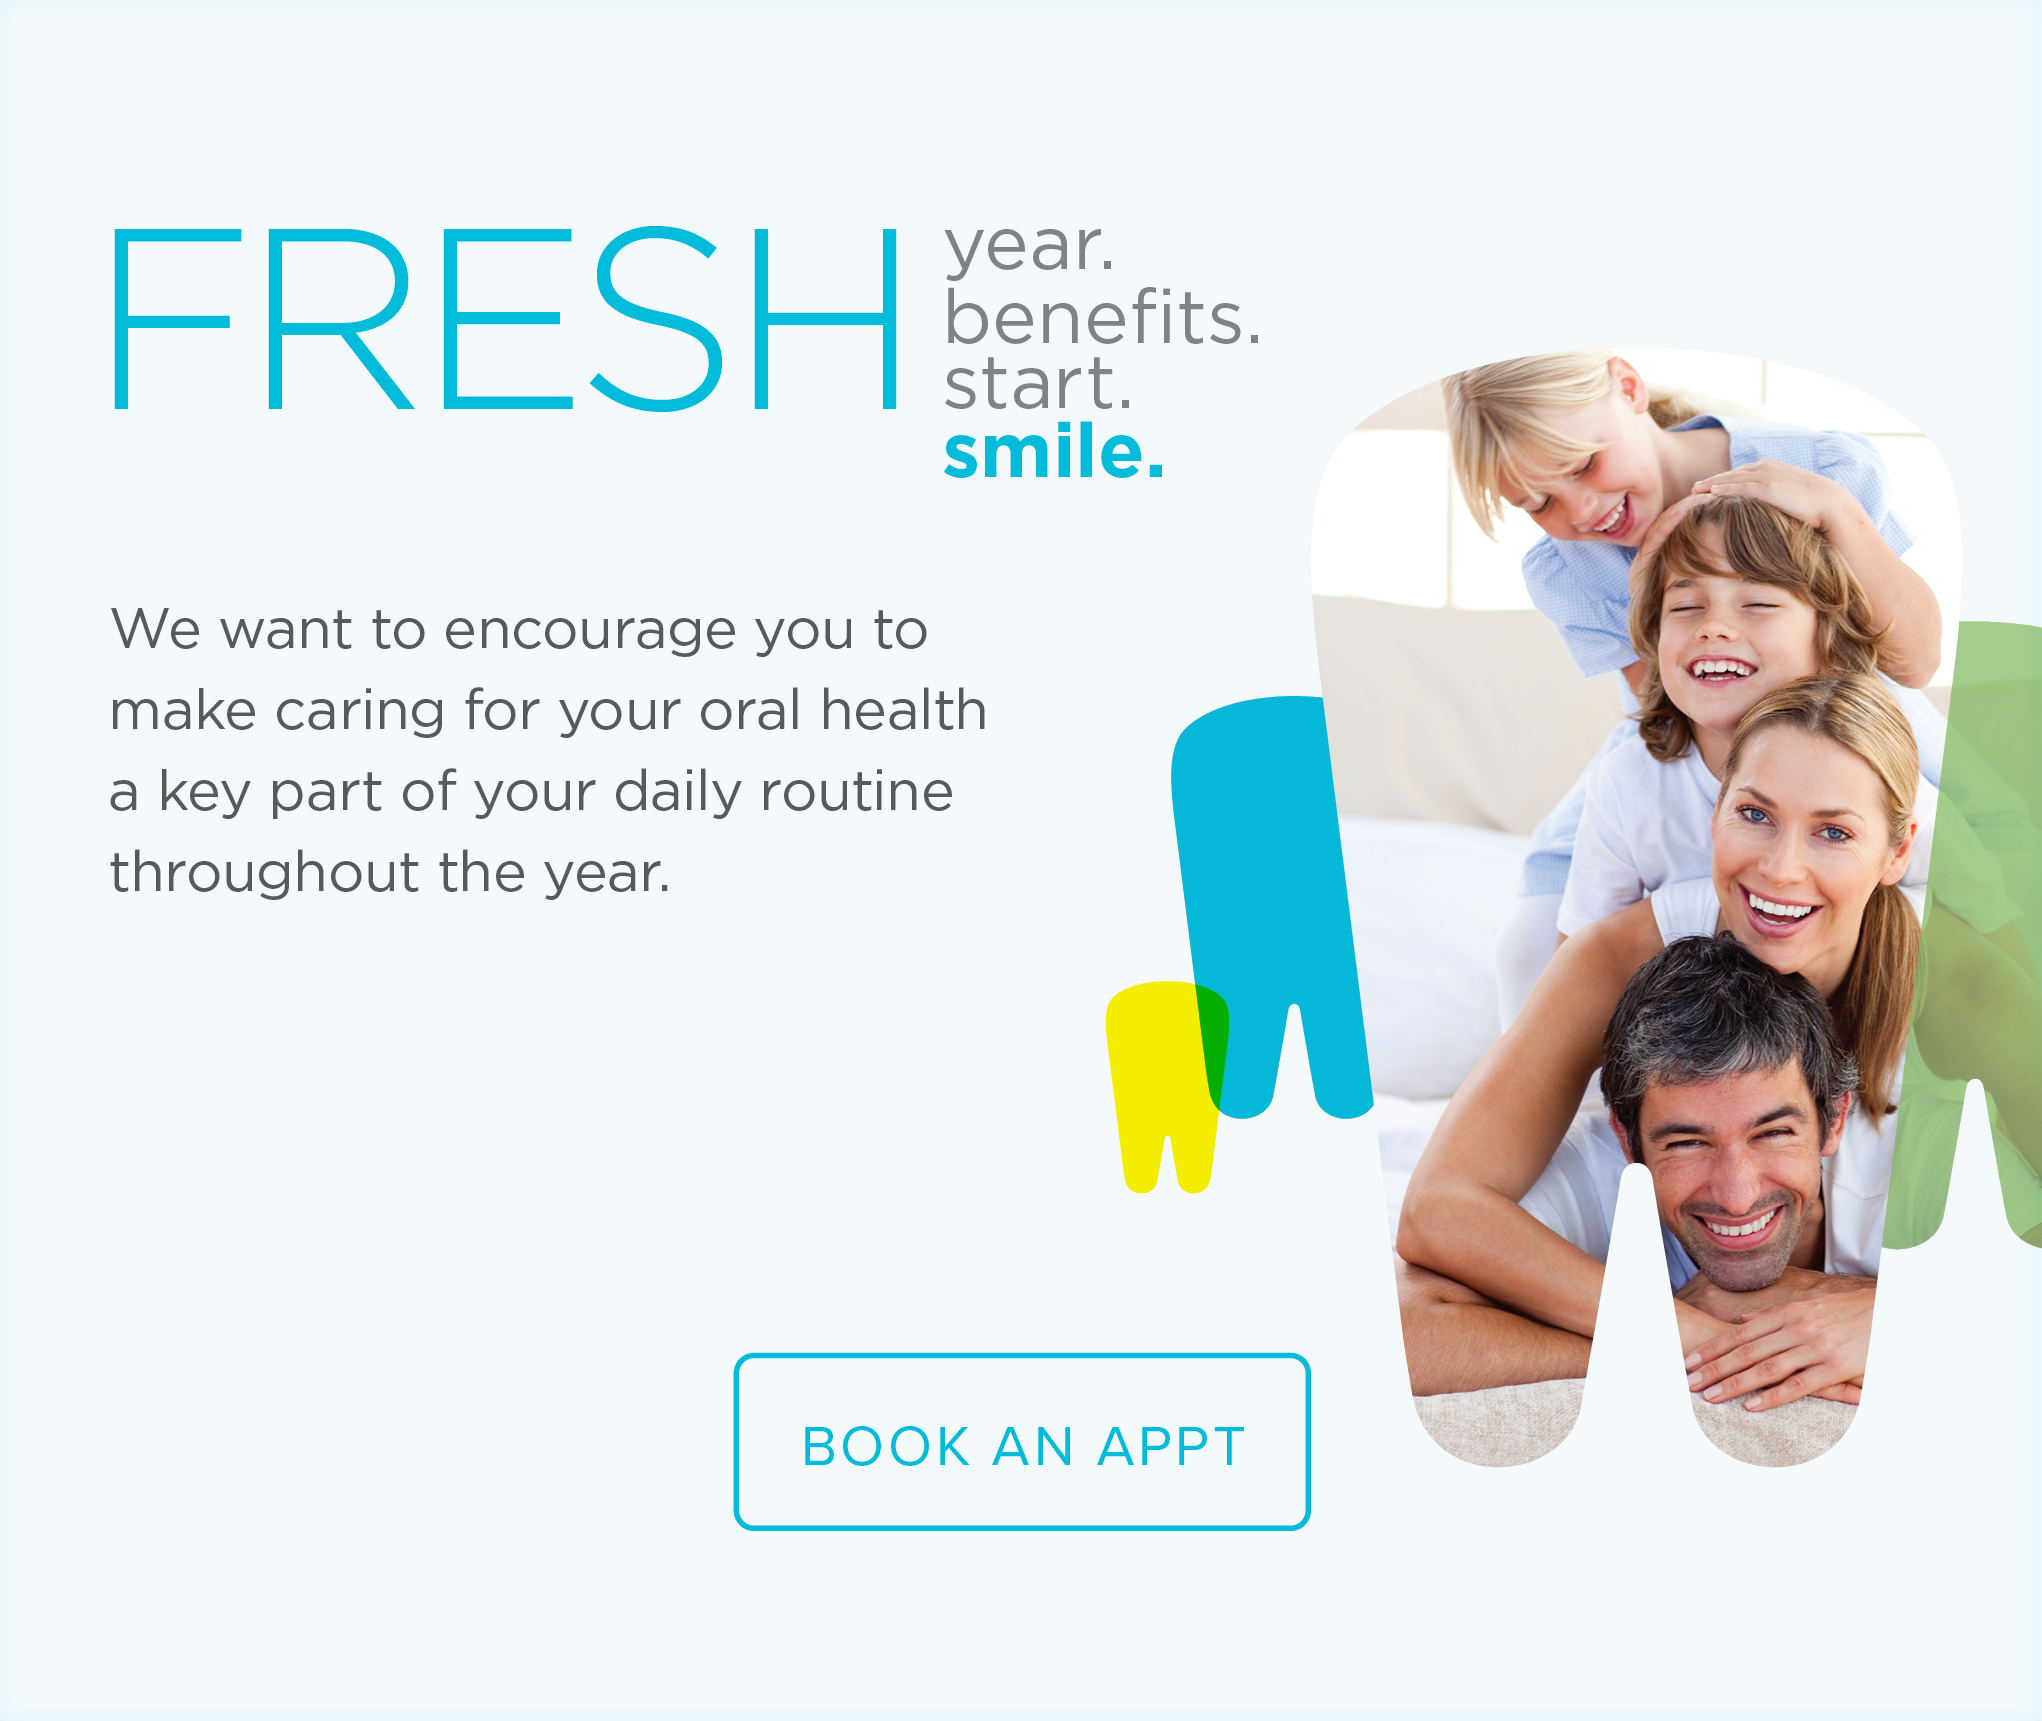 Maricopa Smiles Dentistry and Orthodontics - Make the Most of Your Benefits